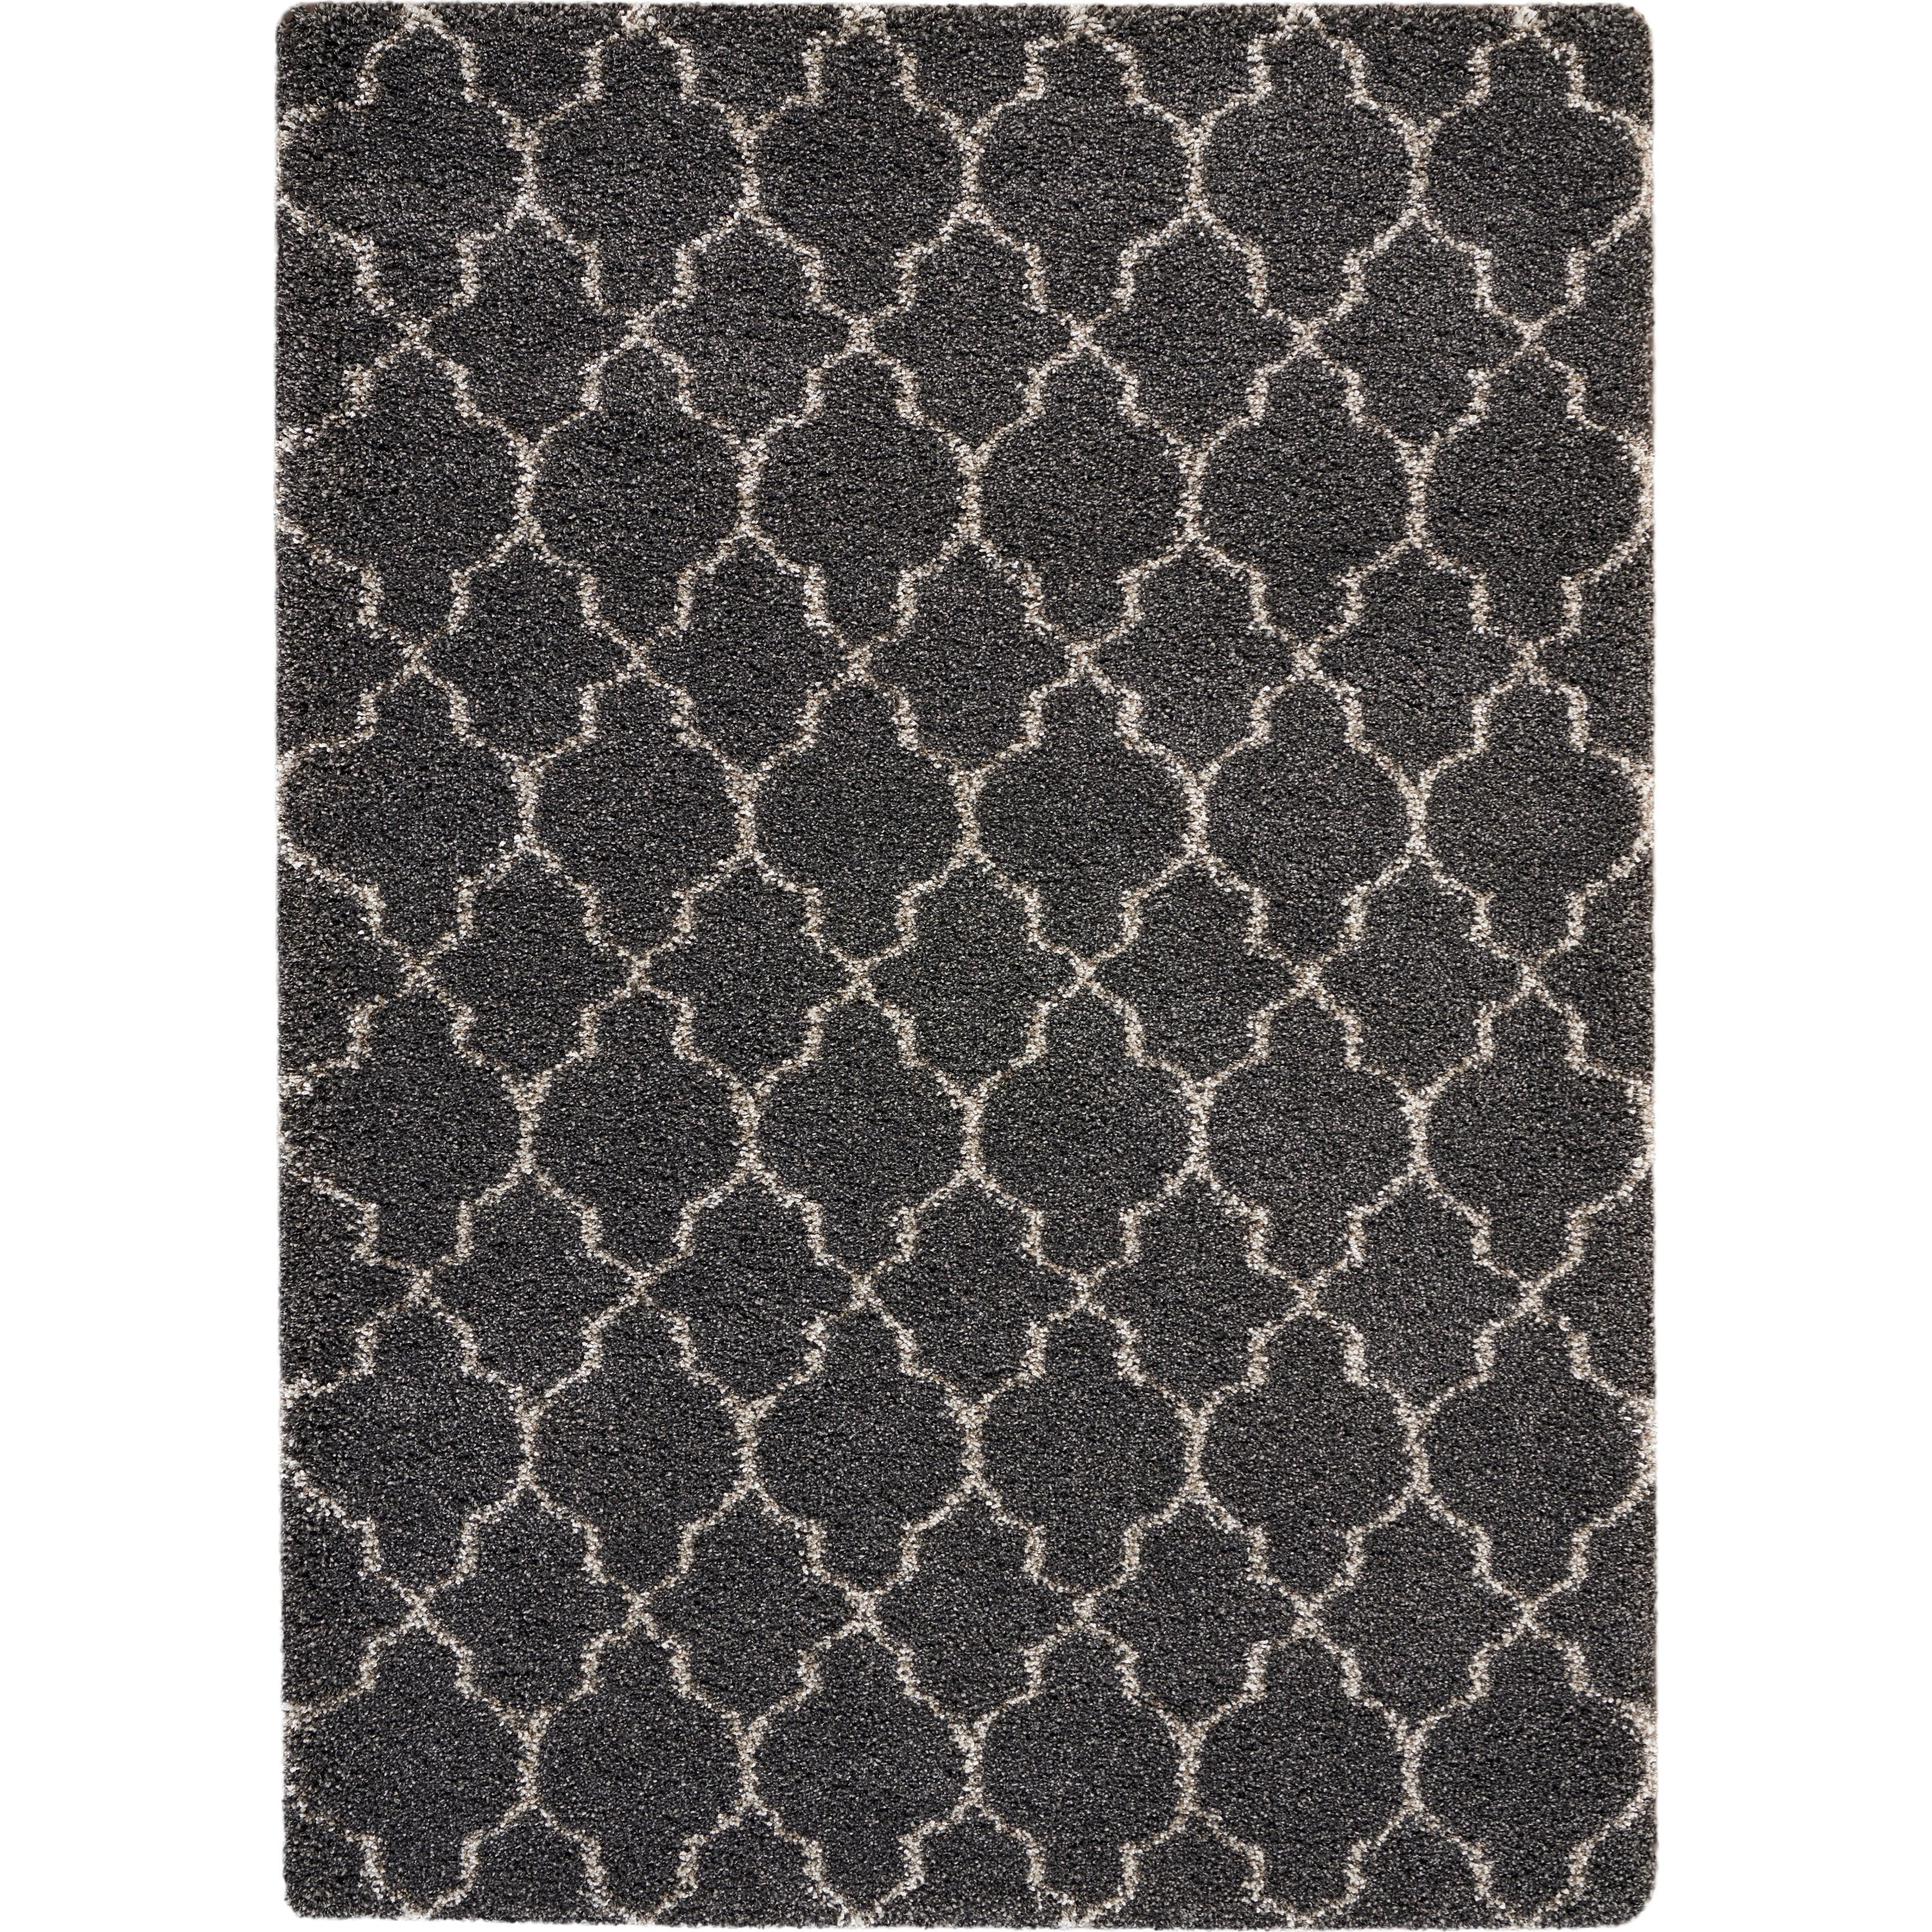 Amore Amore AMOR2 Black 4'x6' Area Rug by Nourison at Home Collections Furniture